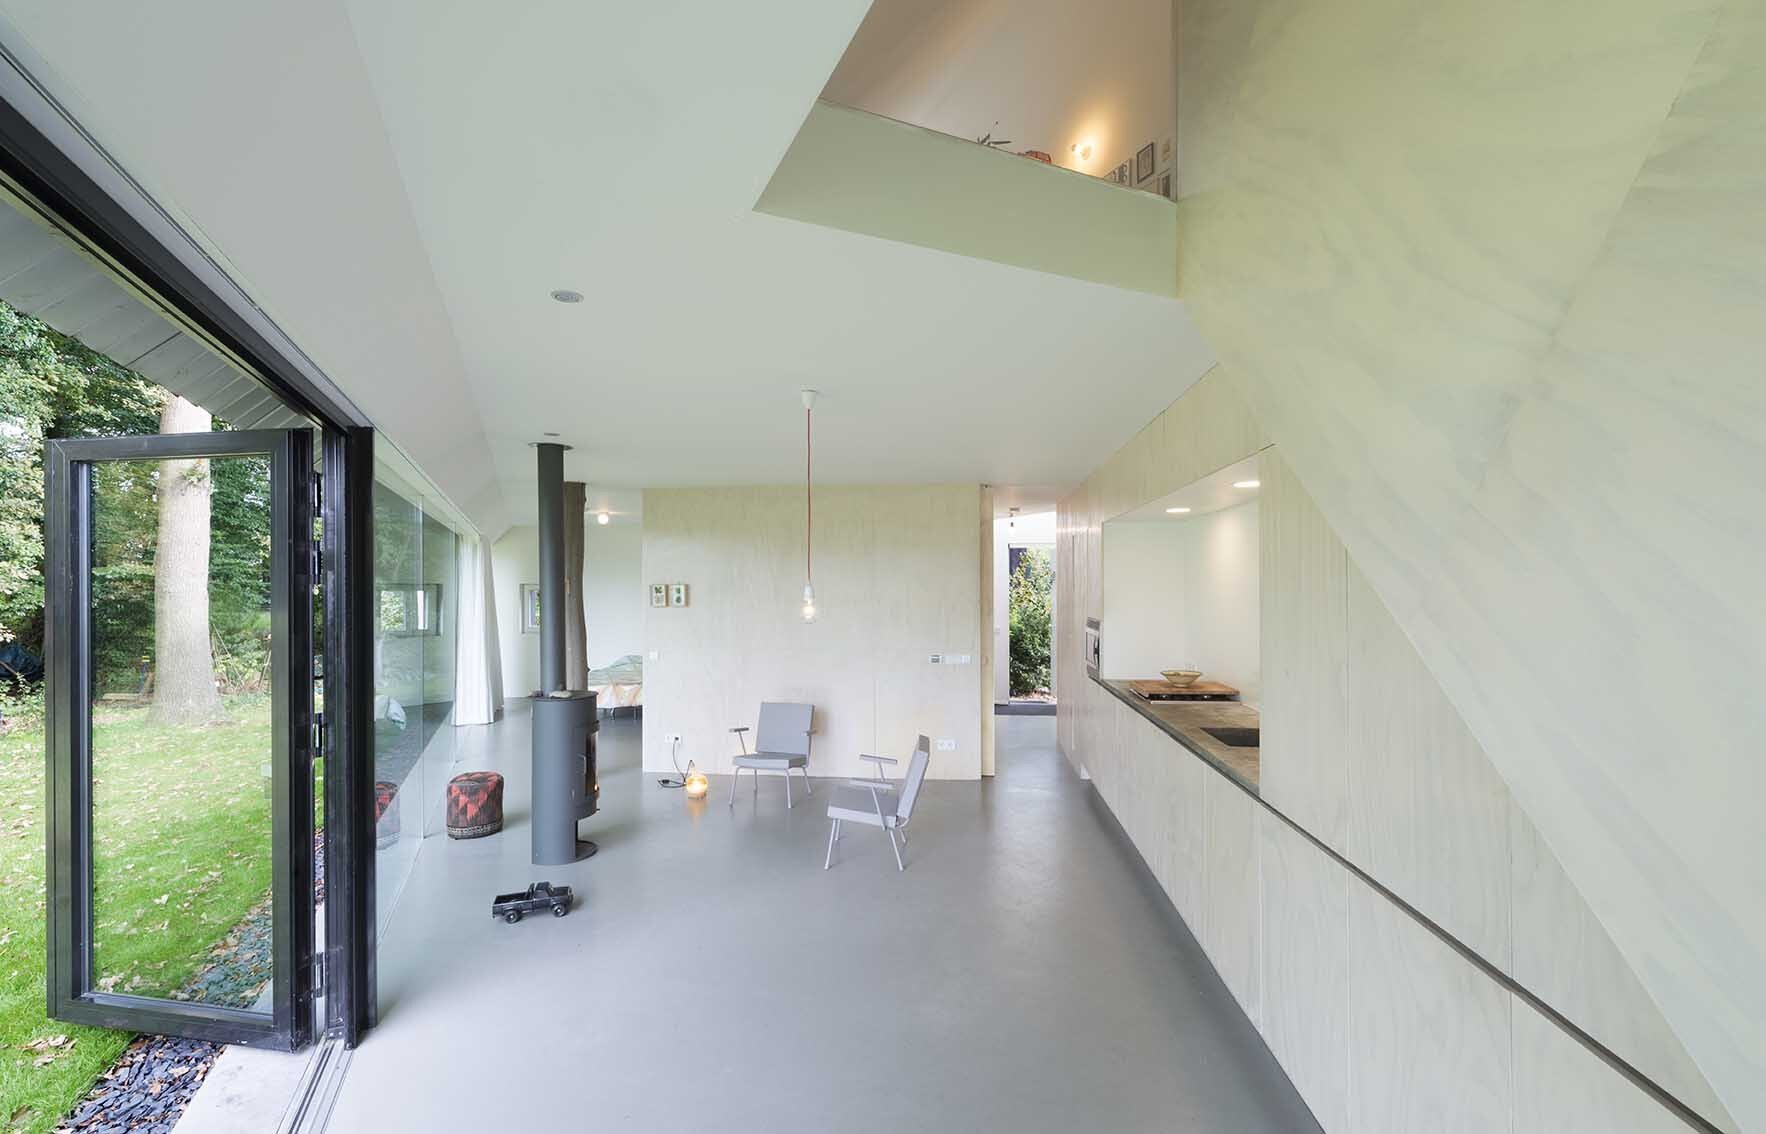 A Minimalist House With A Triangular Footprint By Barend